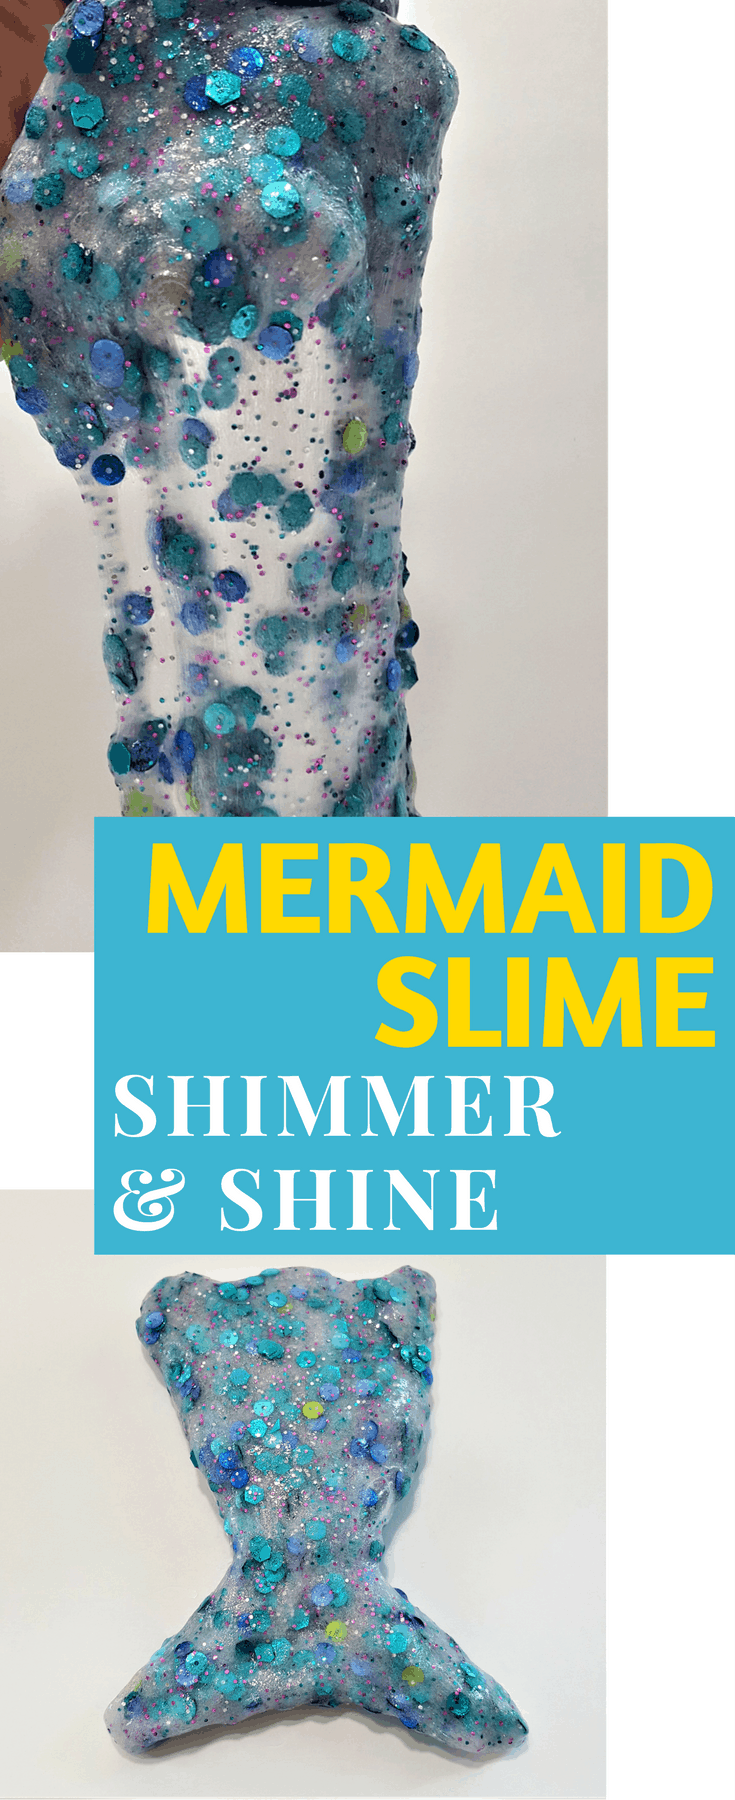 Mermaid Slime - Slimmer & Shine Slime | Mermaid Slime is the ultimate glitter slime! It has a wonderfully unique and fun texture. Using a clear slime base makes this an easy and fun kids craft!